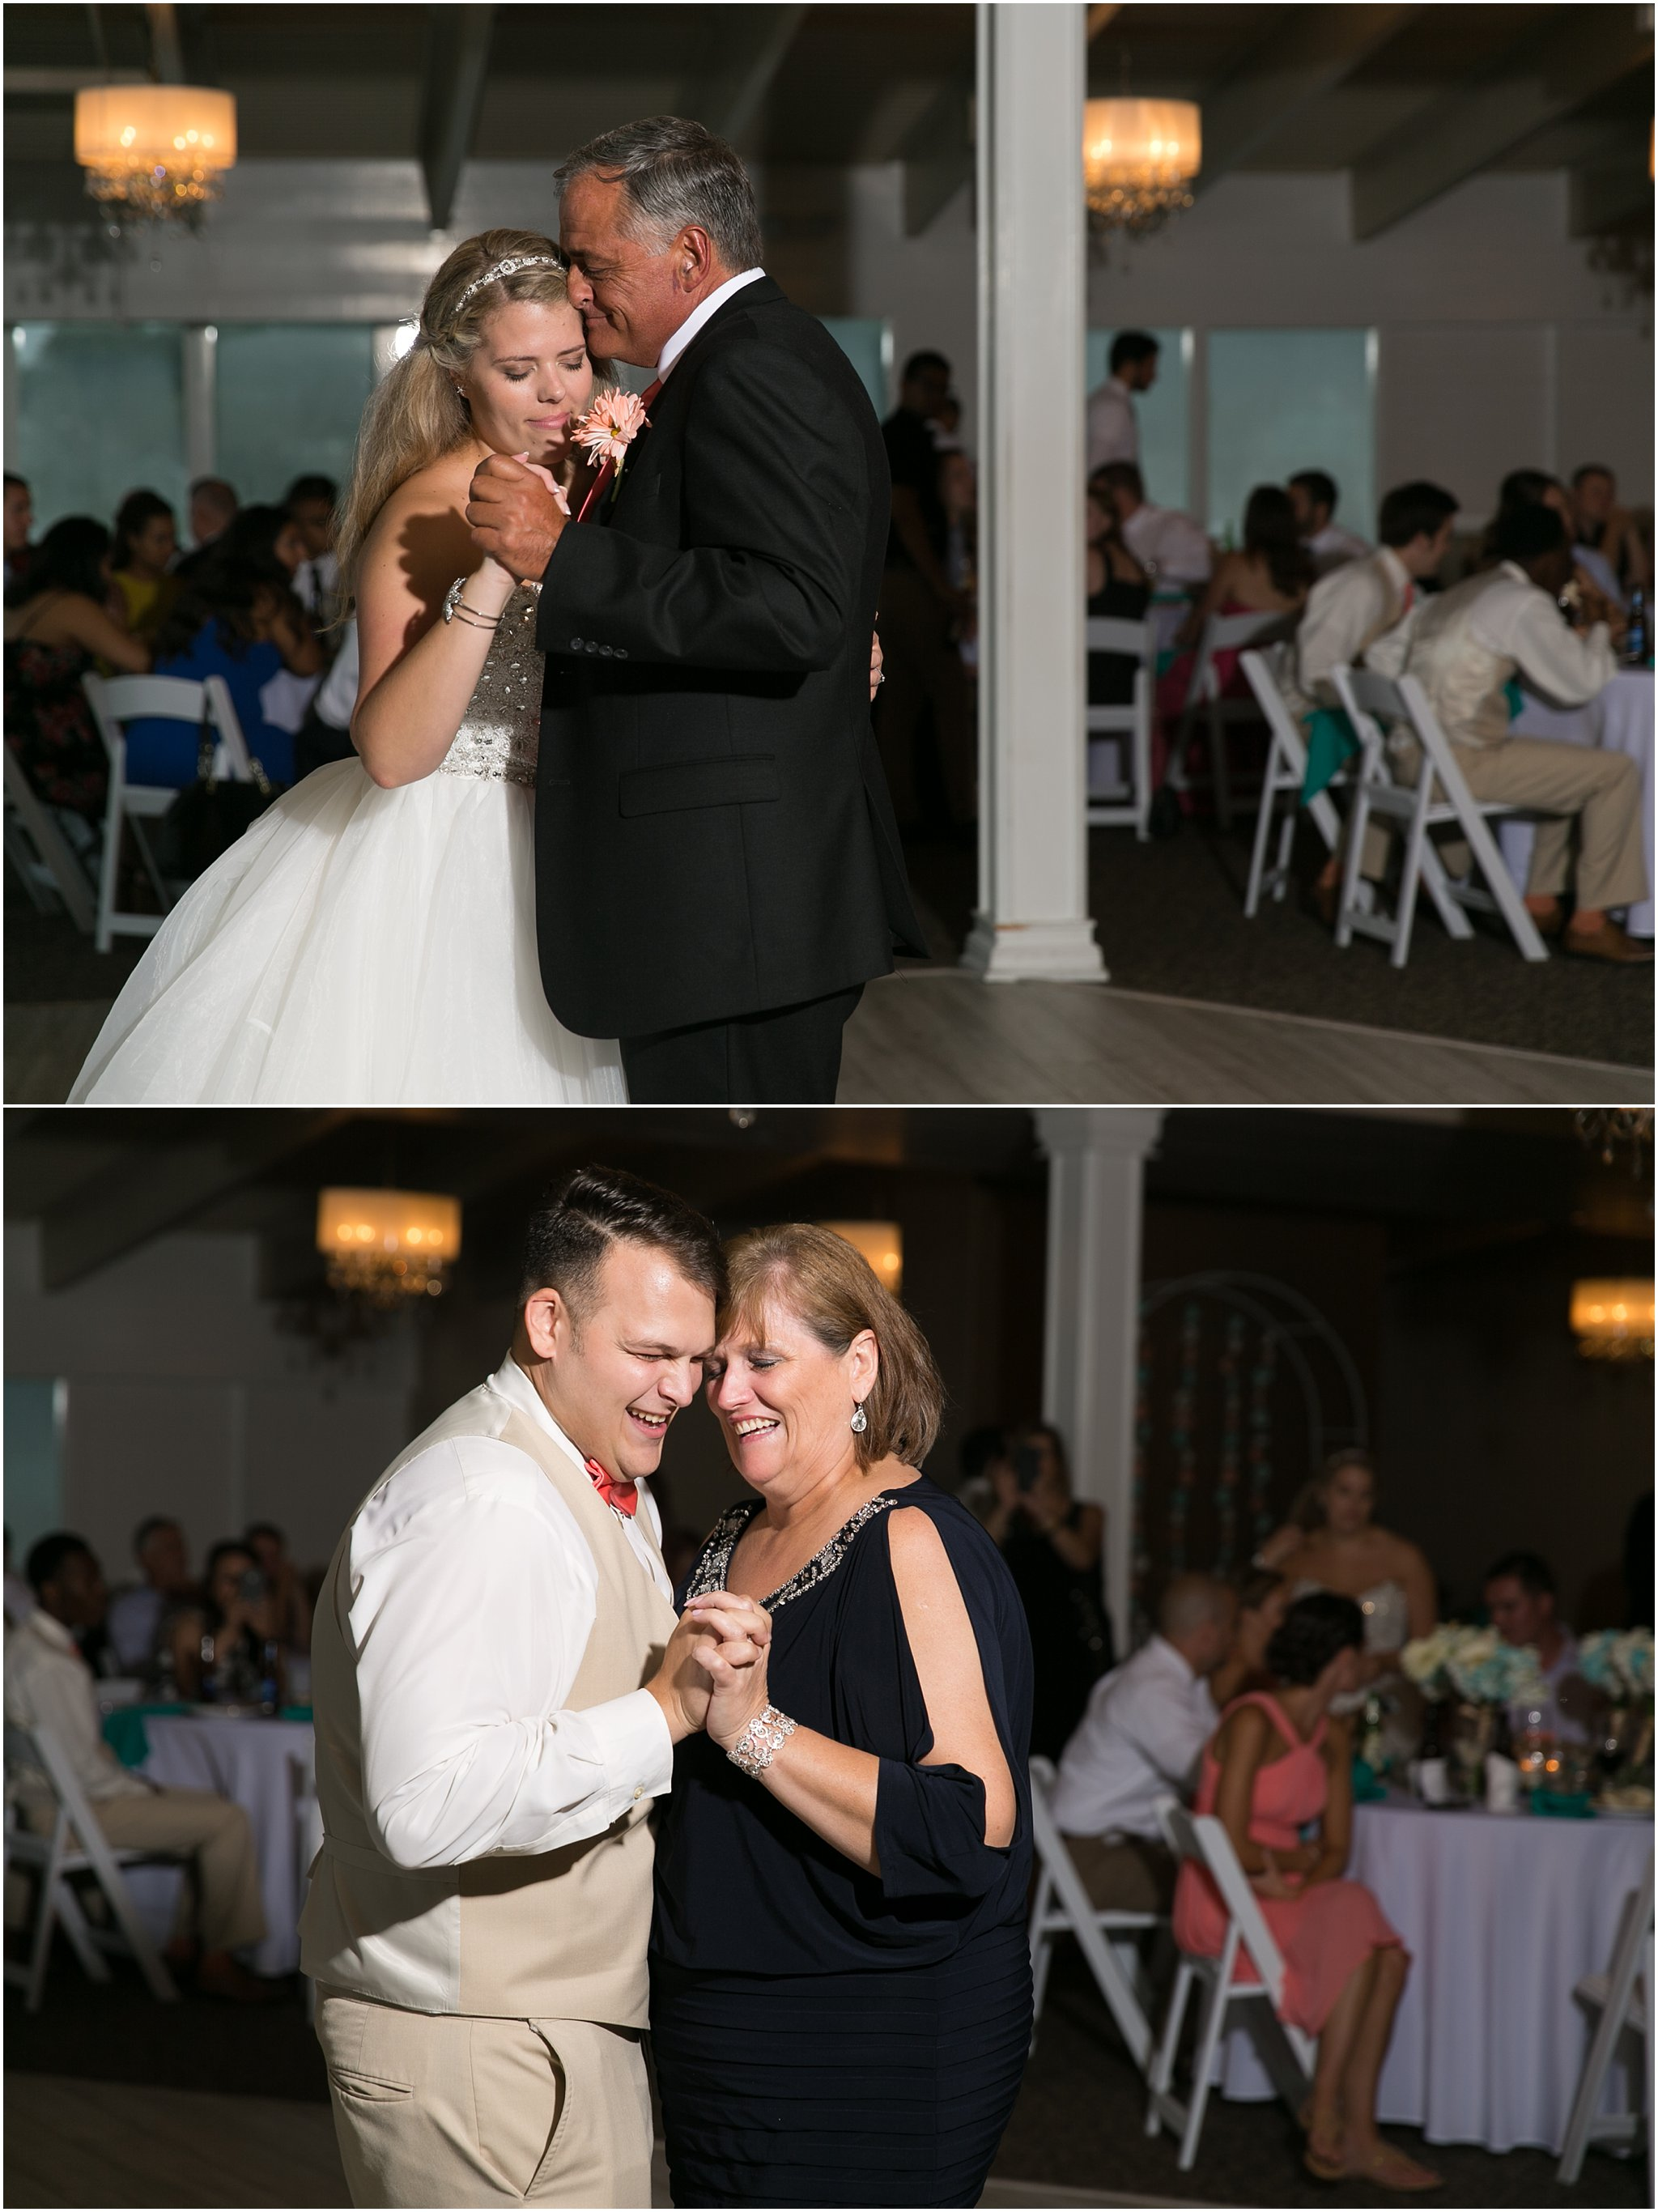 jessica_ryan_photography_wedding_hampton_roads_virginia_virginia_beach_weddings_0632